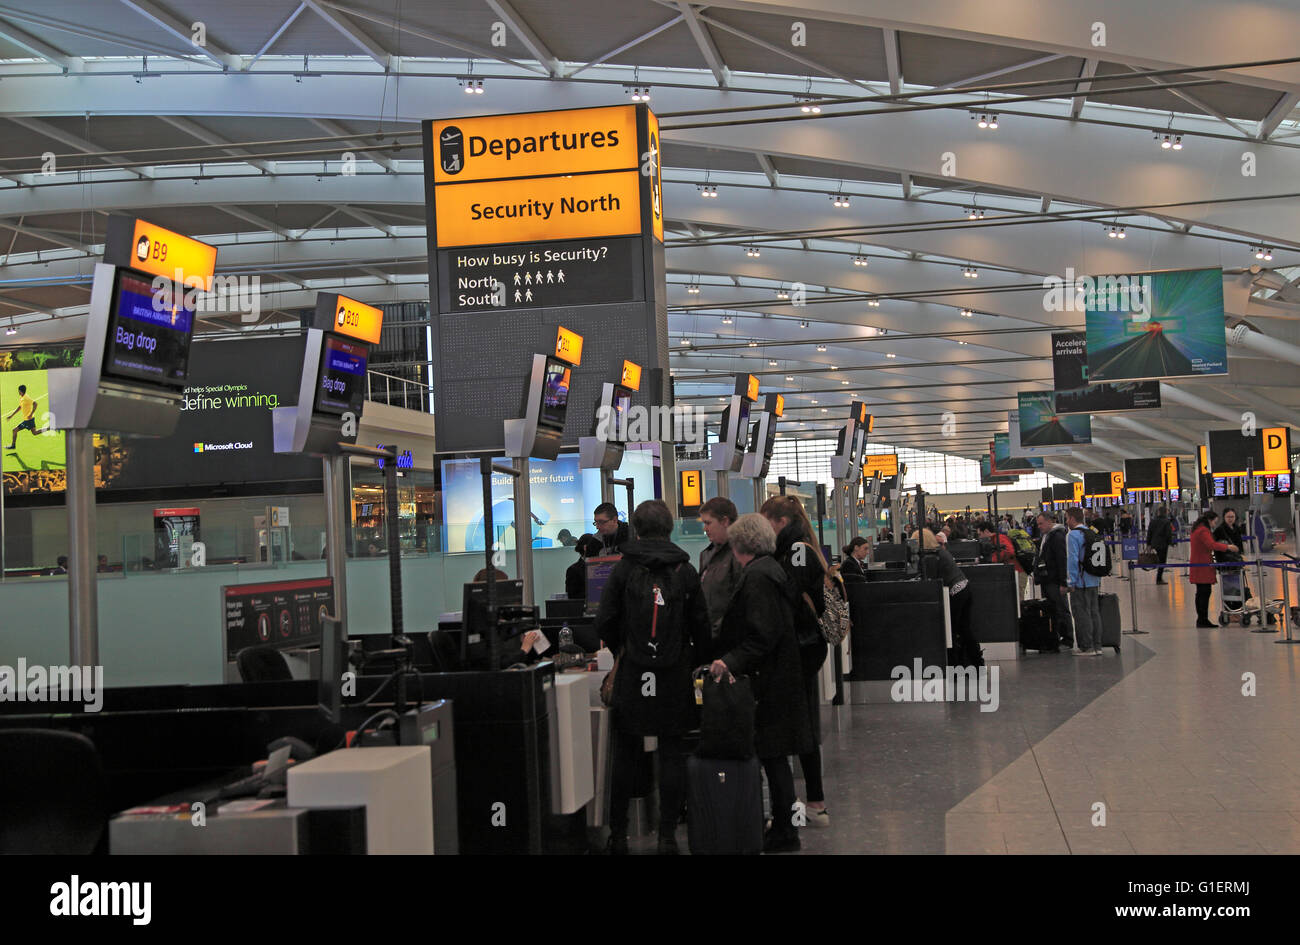 People checking-in at bag drop desk departure area terminal 5 Heathrow airport, London, England, UK - Stock Image